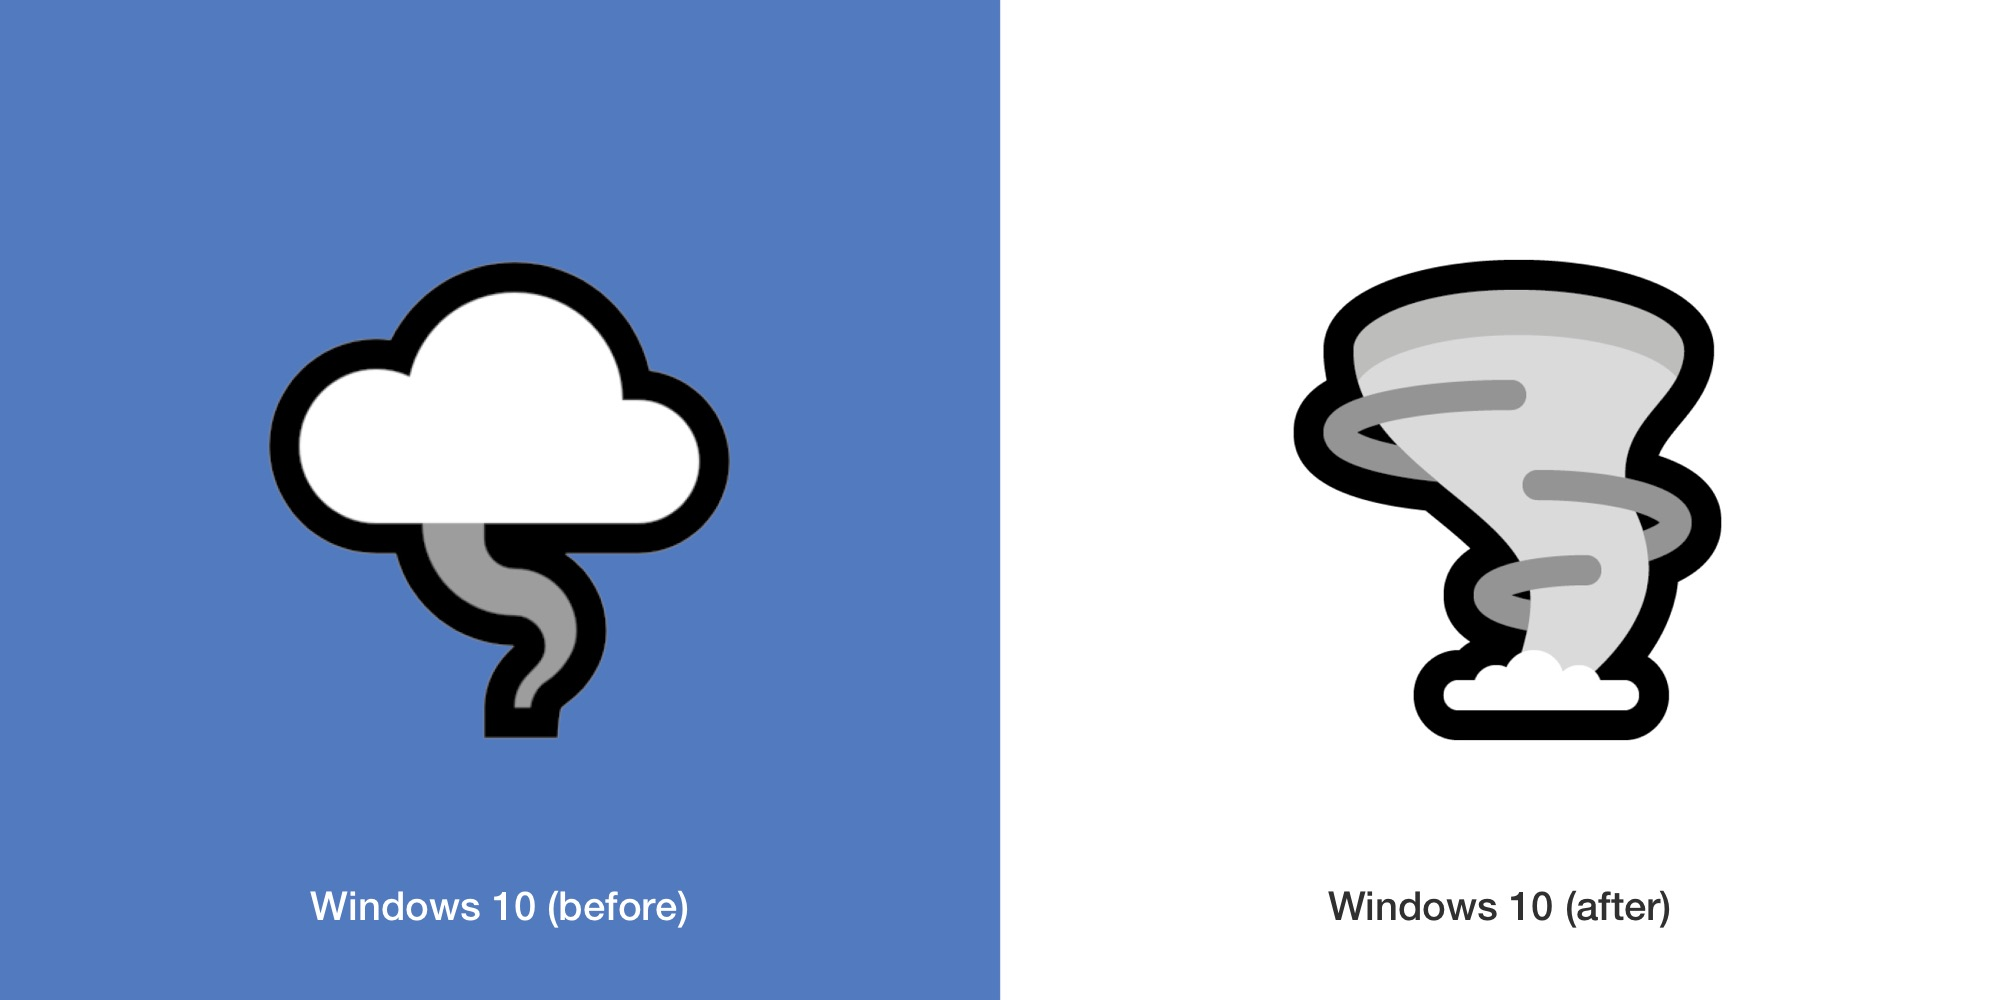 tornado-emojipedia-windows10-april-2018-emojipedia